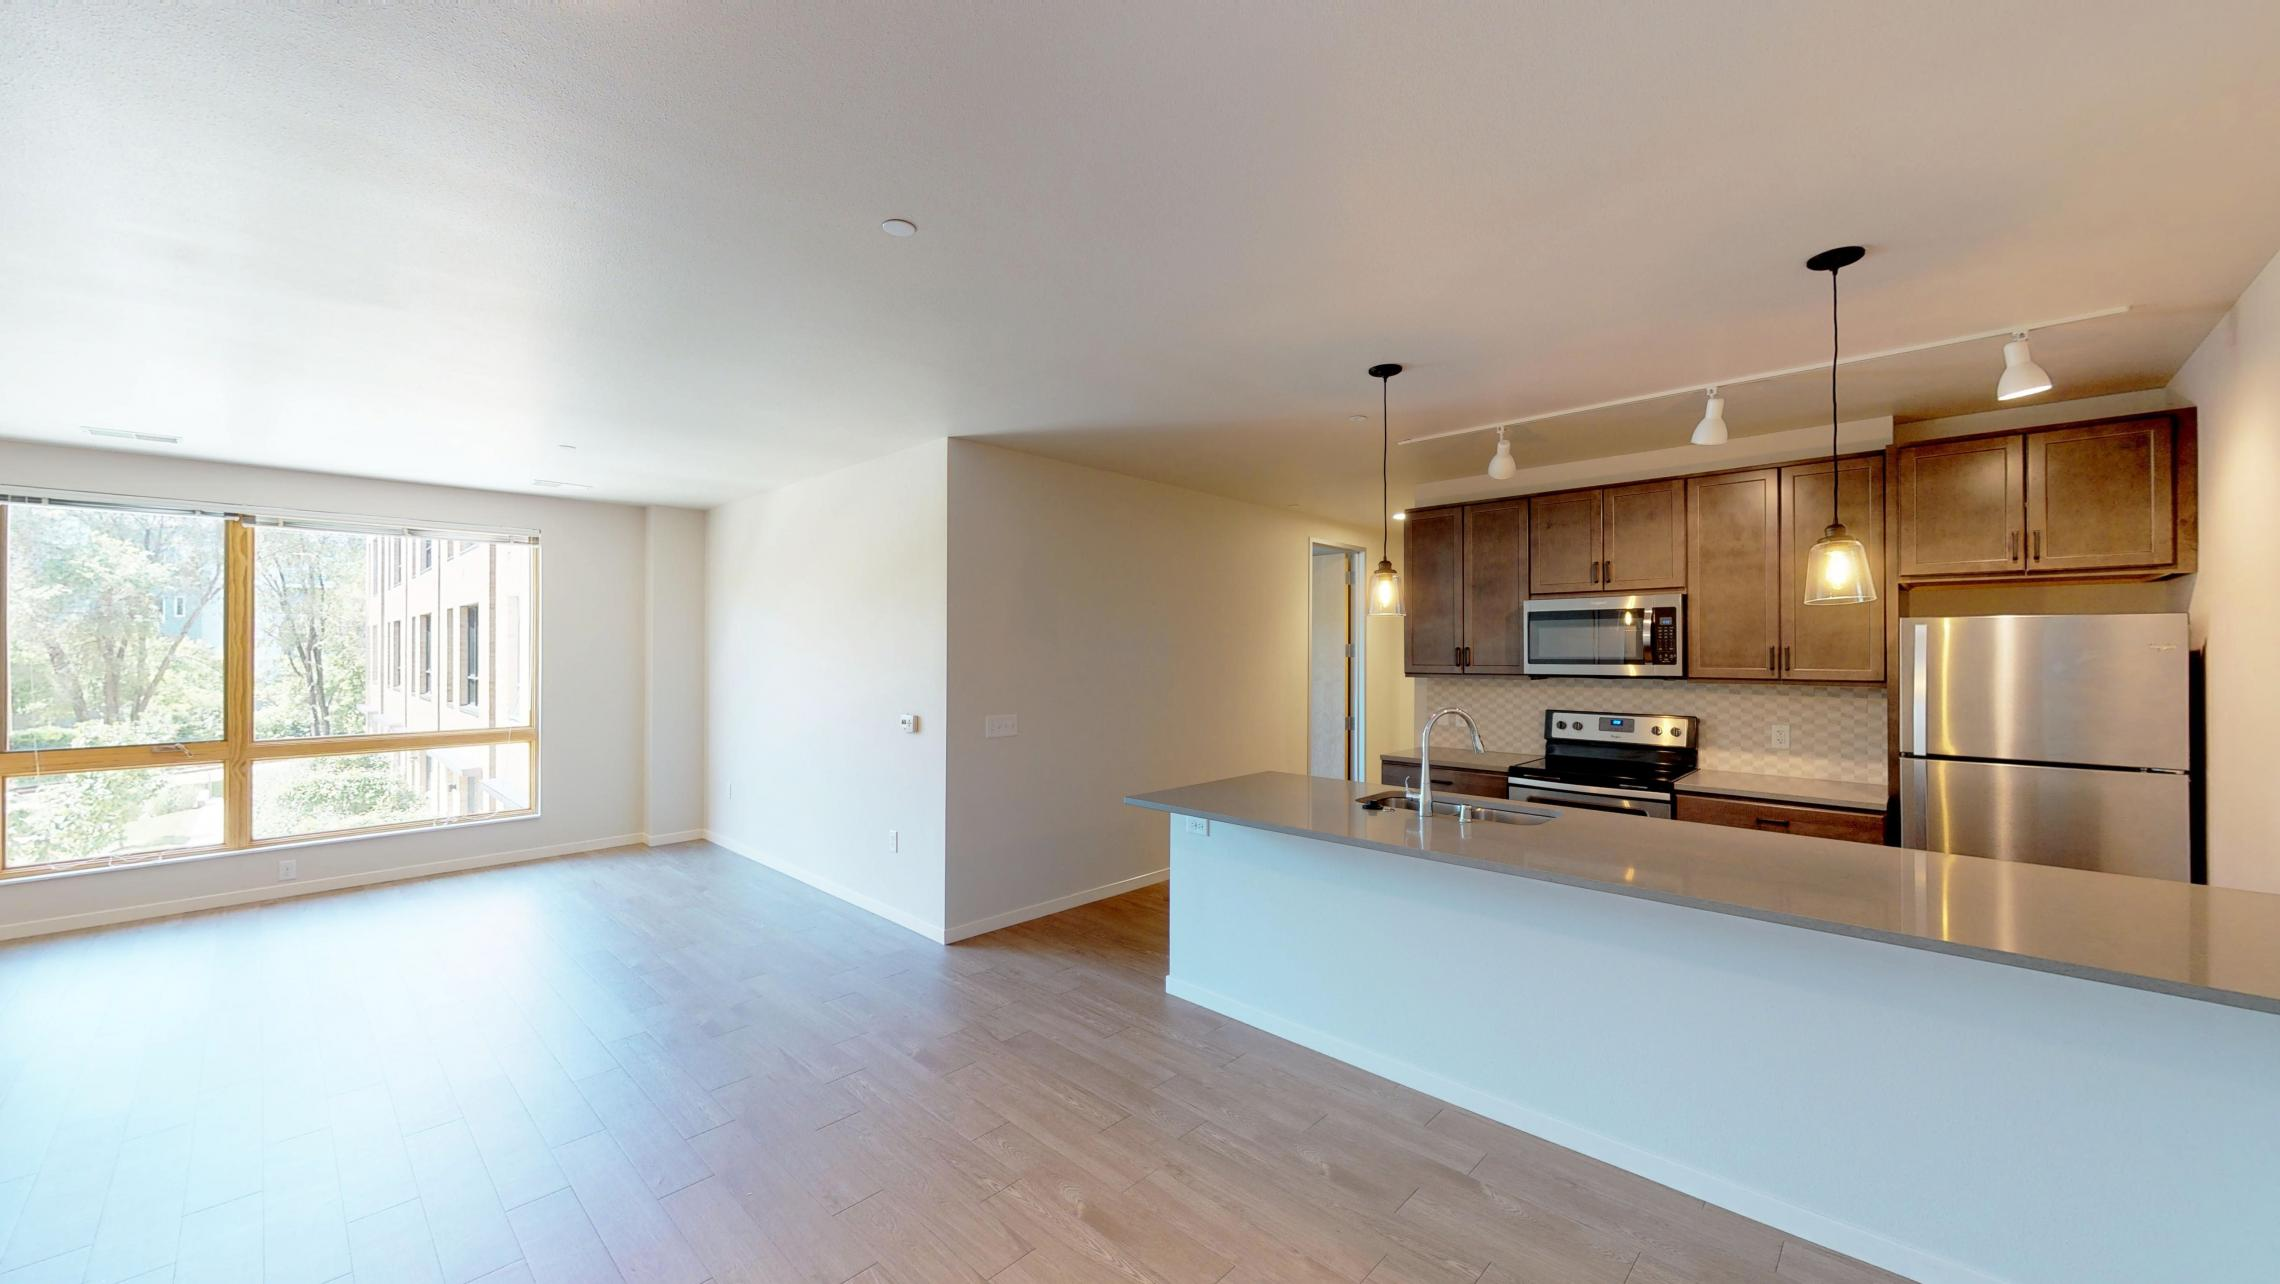 Quarter-Row-Yards-Apartment-210-Three-Bedroom-Two-Den-Modern-Upscale-Fitness-Lounge-Courtyard-Downtown-Living-Amenities-Luxury